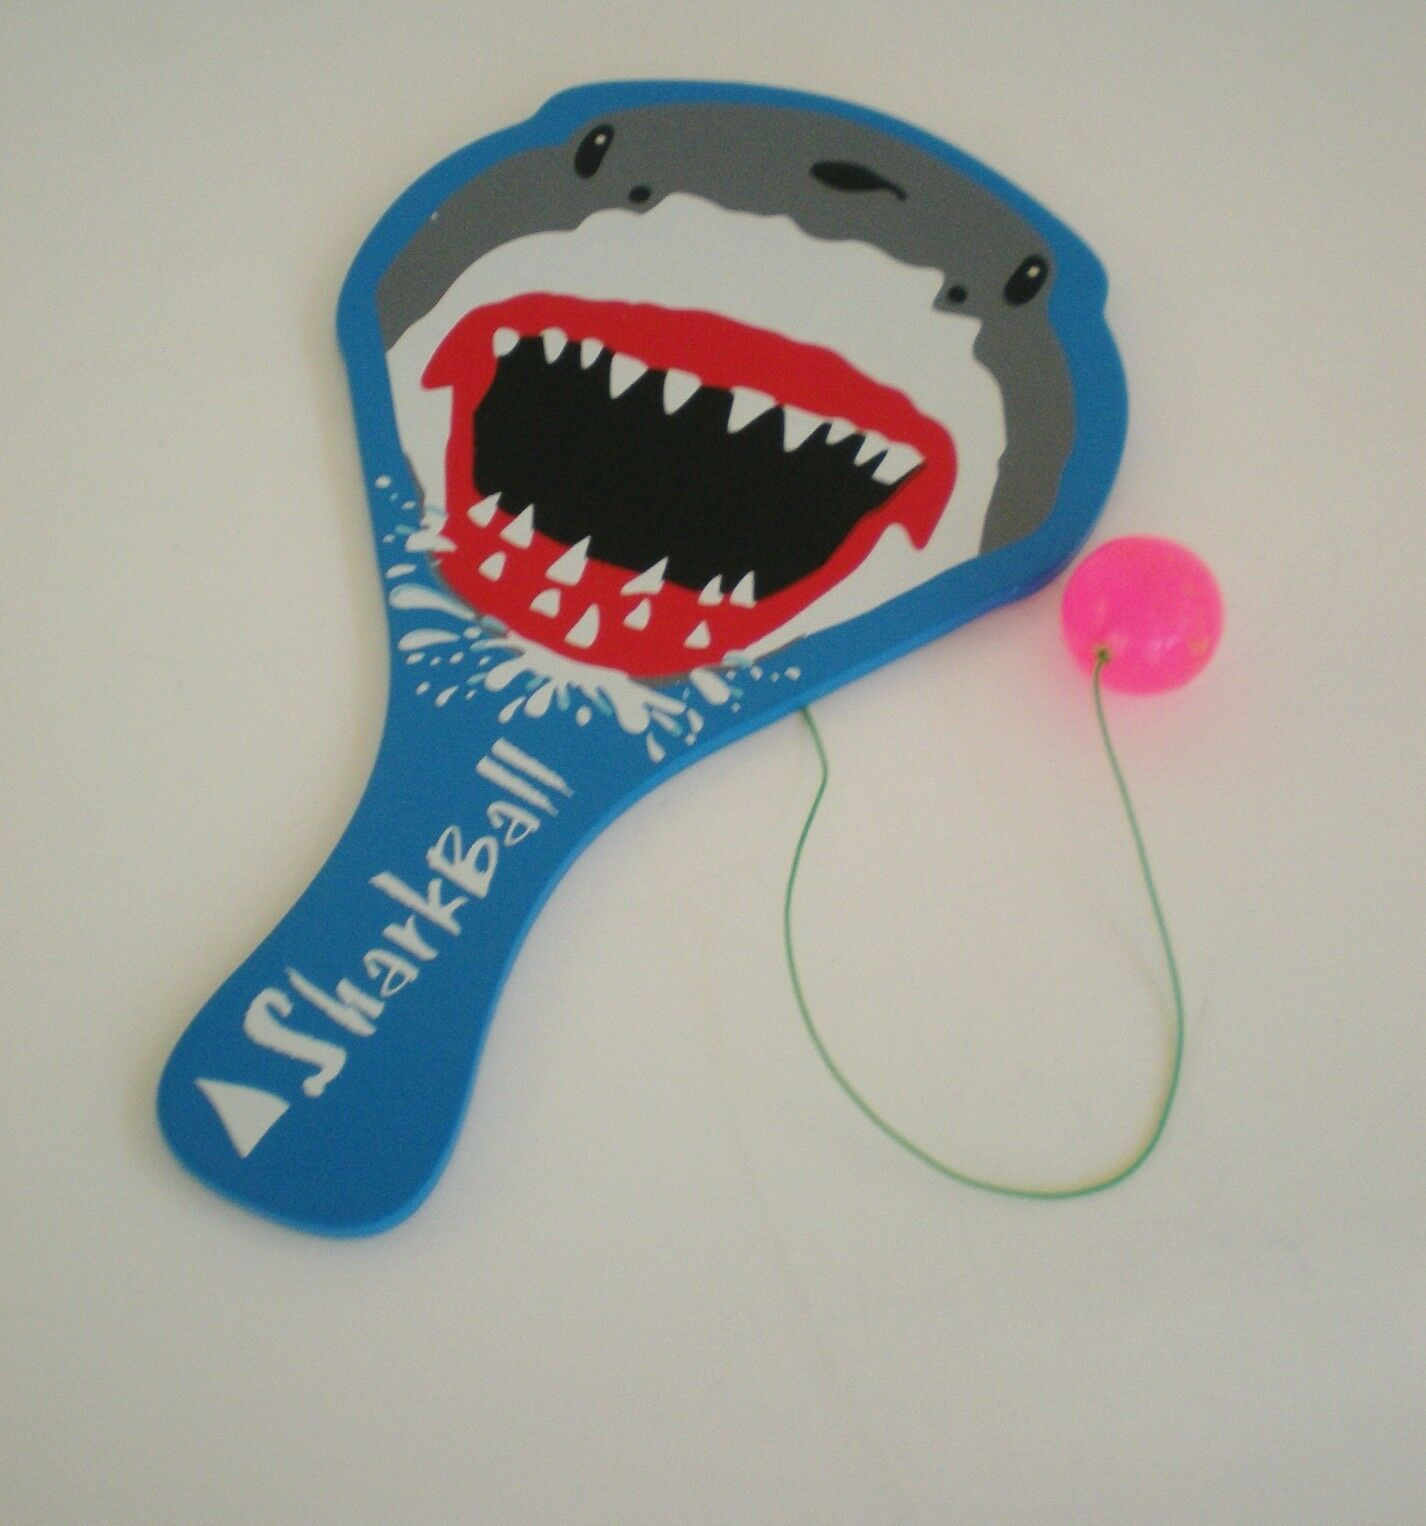 Wooden Paddle Ball Game Wooden Paddle Ball Game Board With Shark Theme 41 X 41 eBay 28